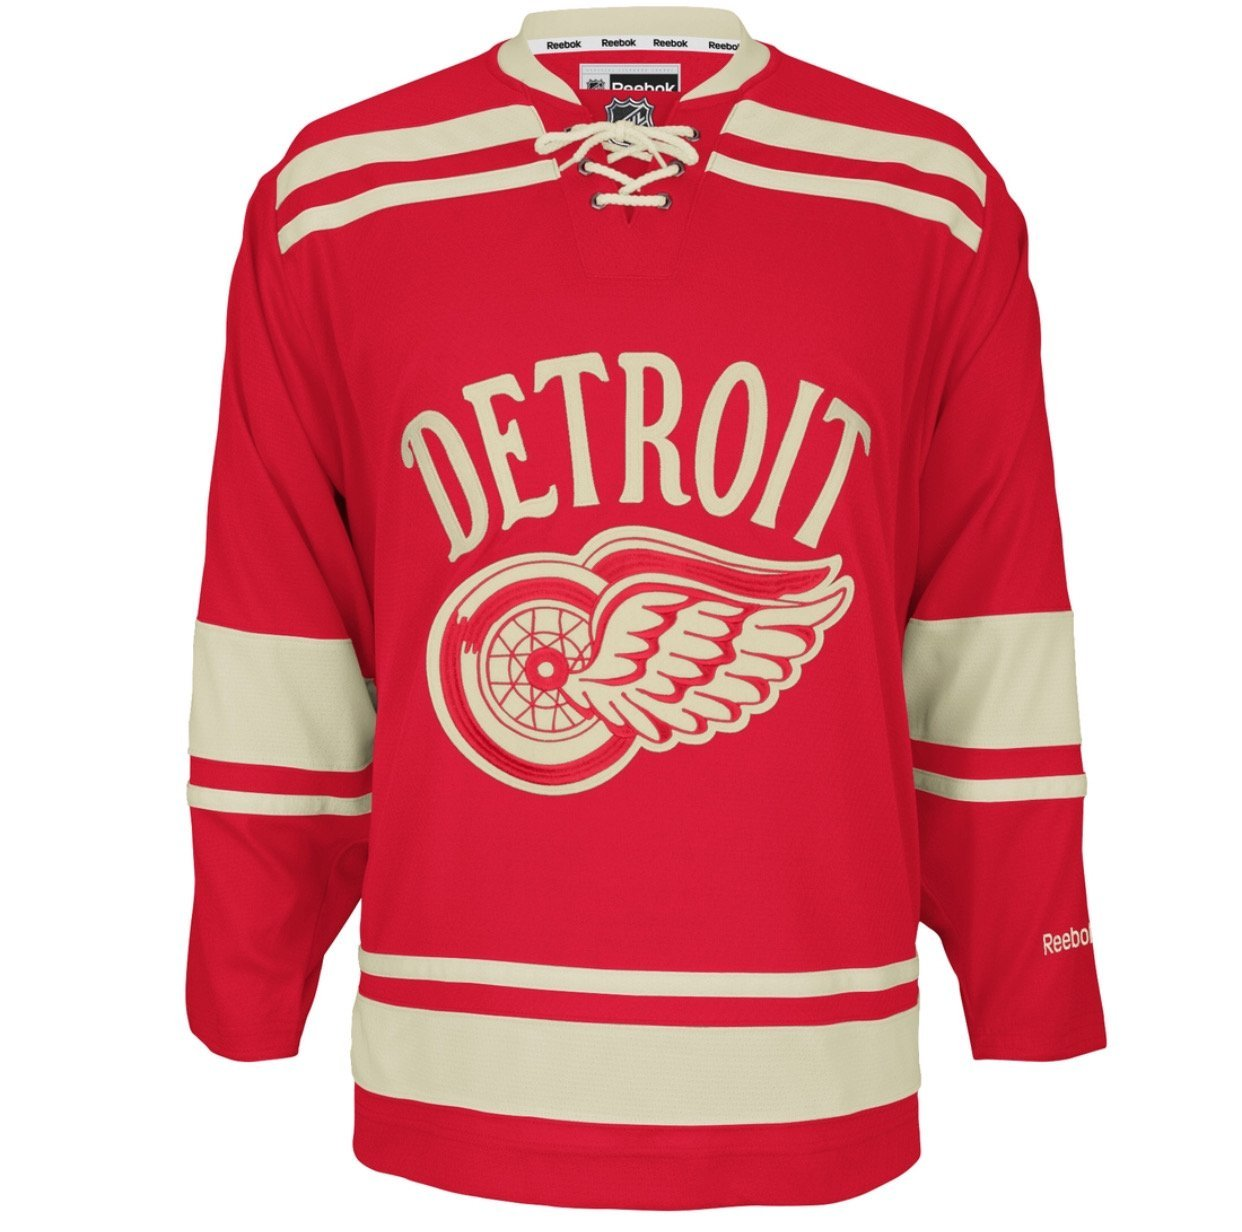 Detroit Red Wings Premier Adidas NHL Home & Road Jerseys